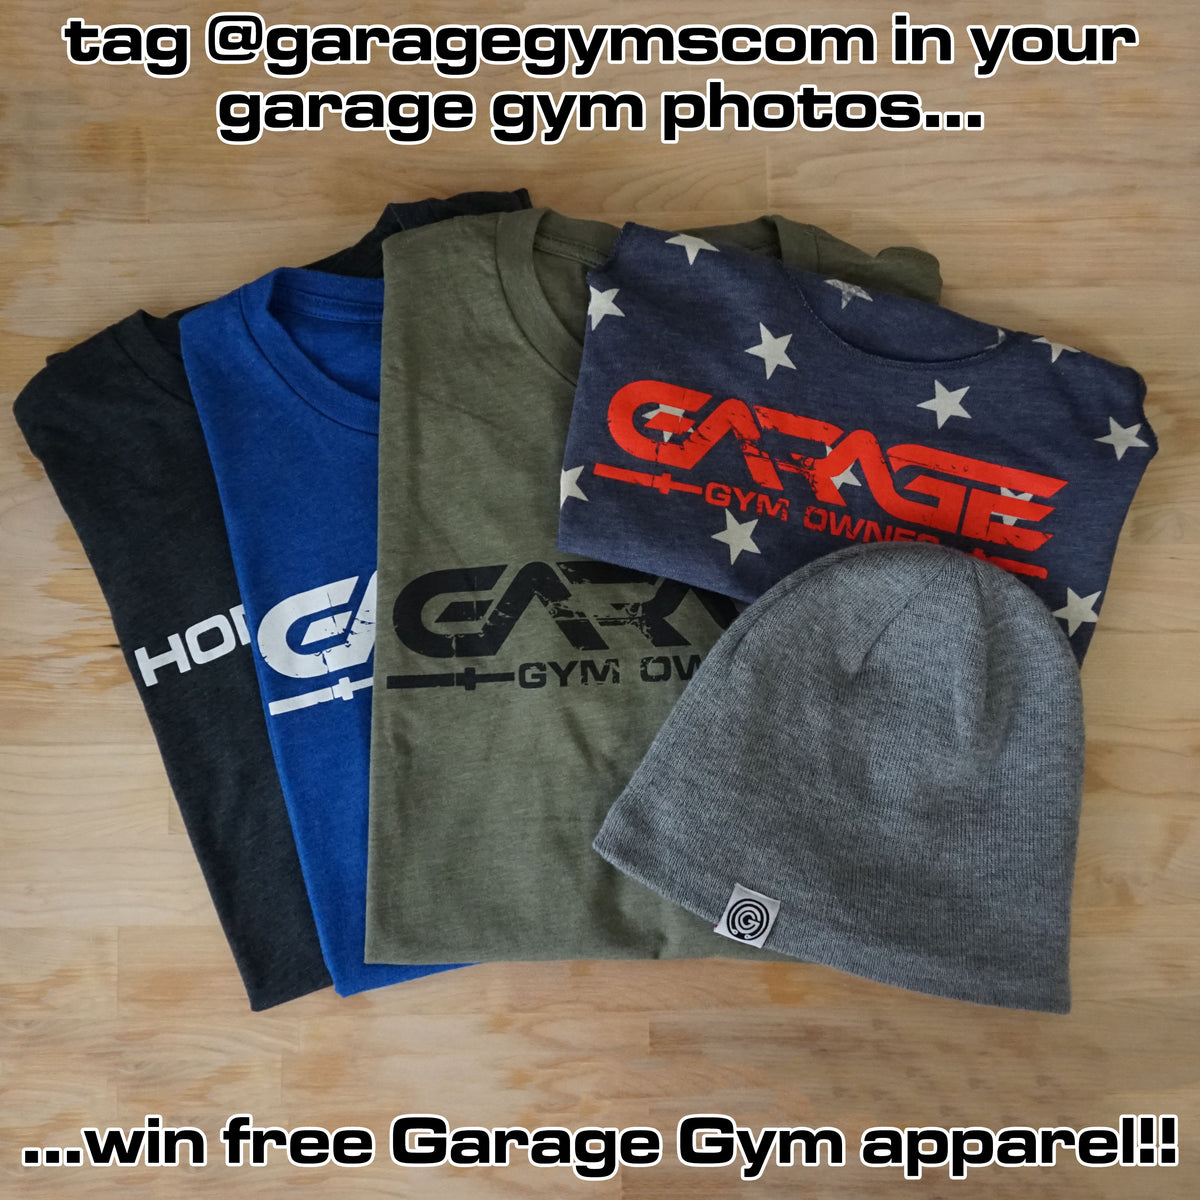 Garage gym apparel ppi